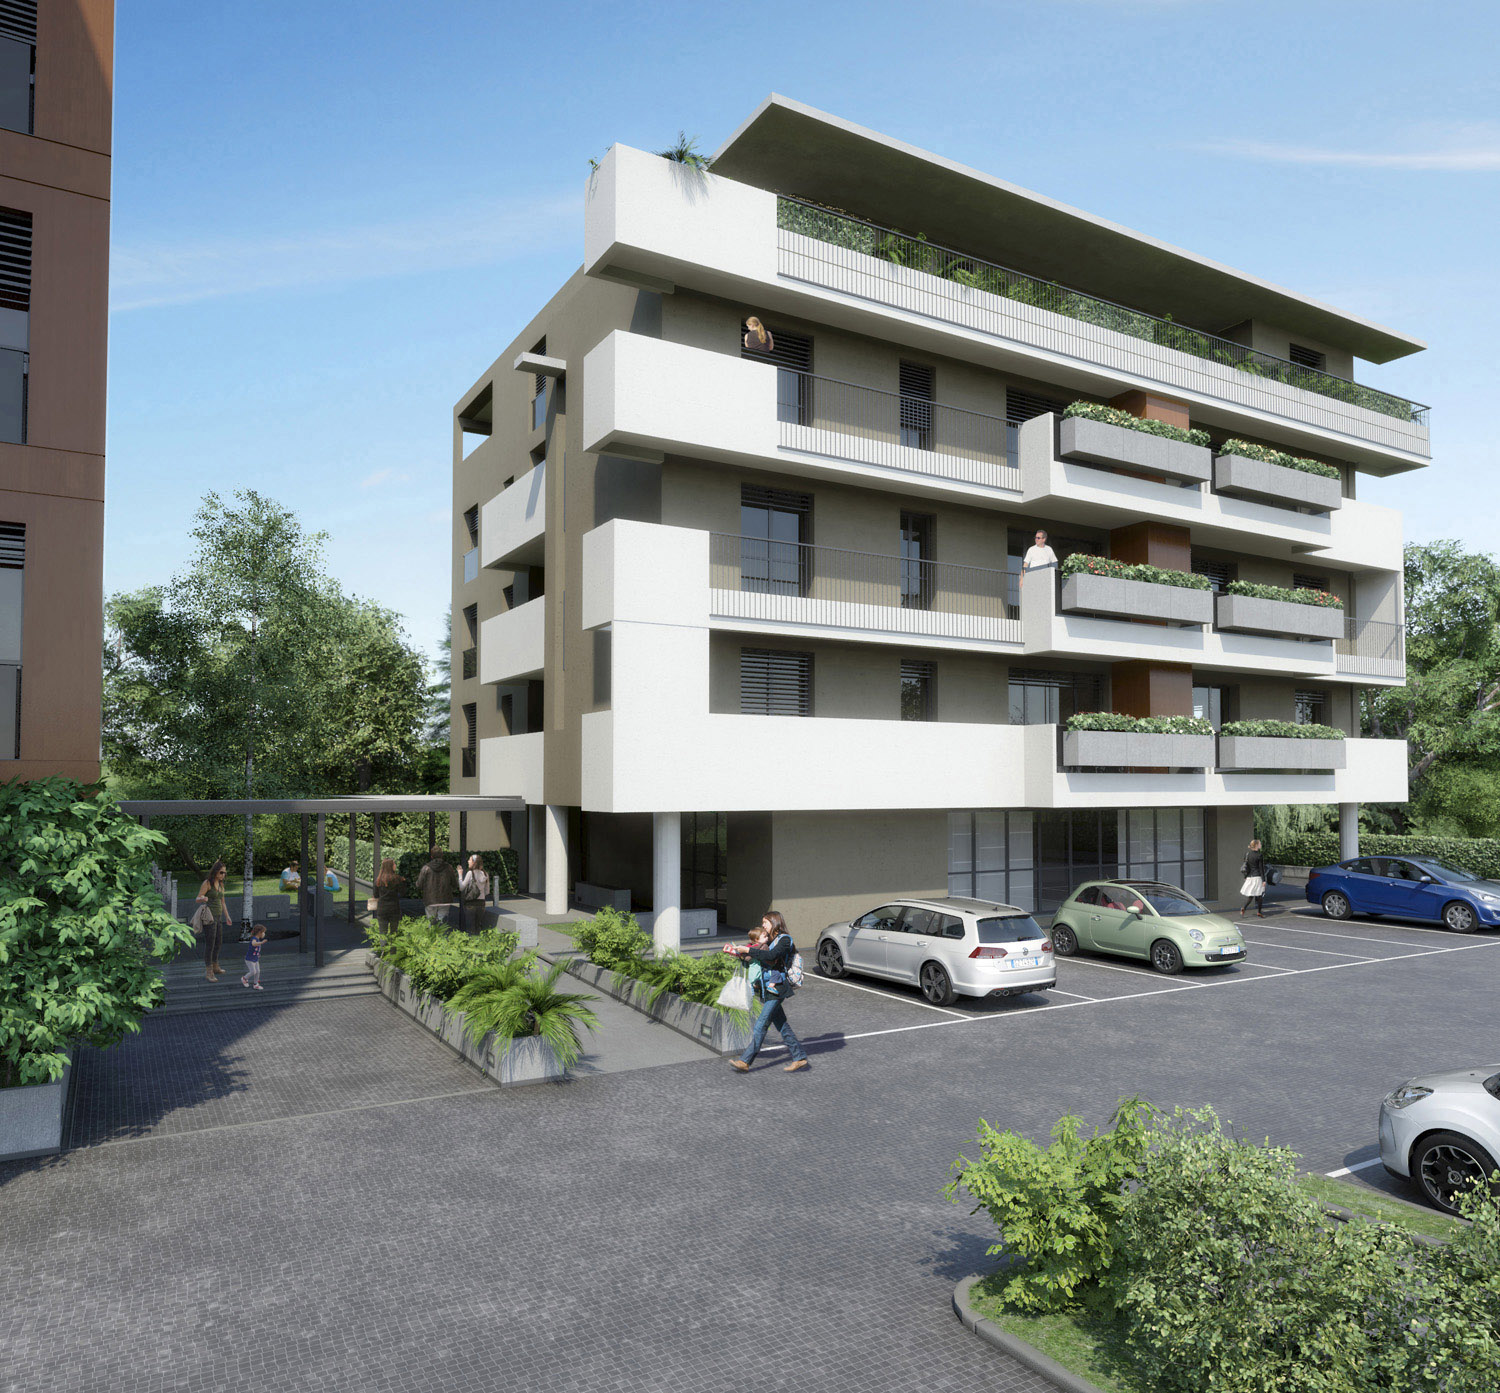 rendering 03 photo © 2018 by GBA Studio srl / Gianluca Brini - Architetto